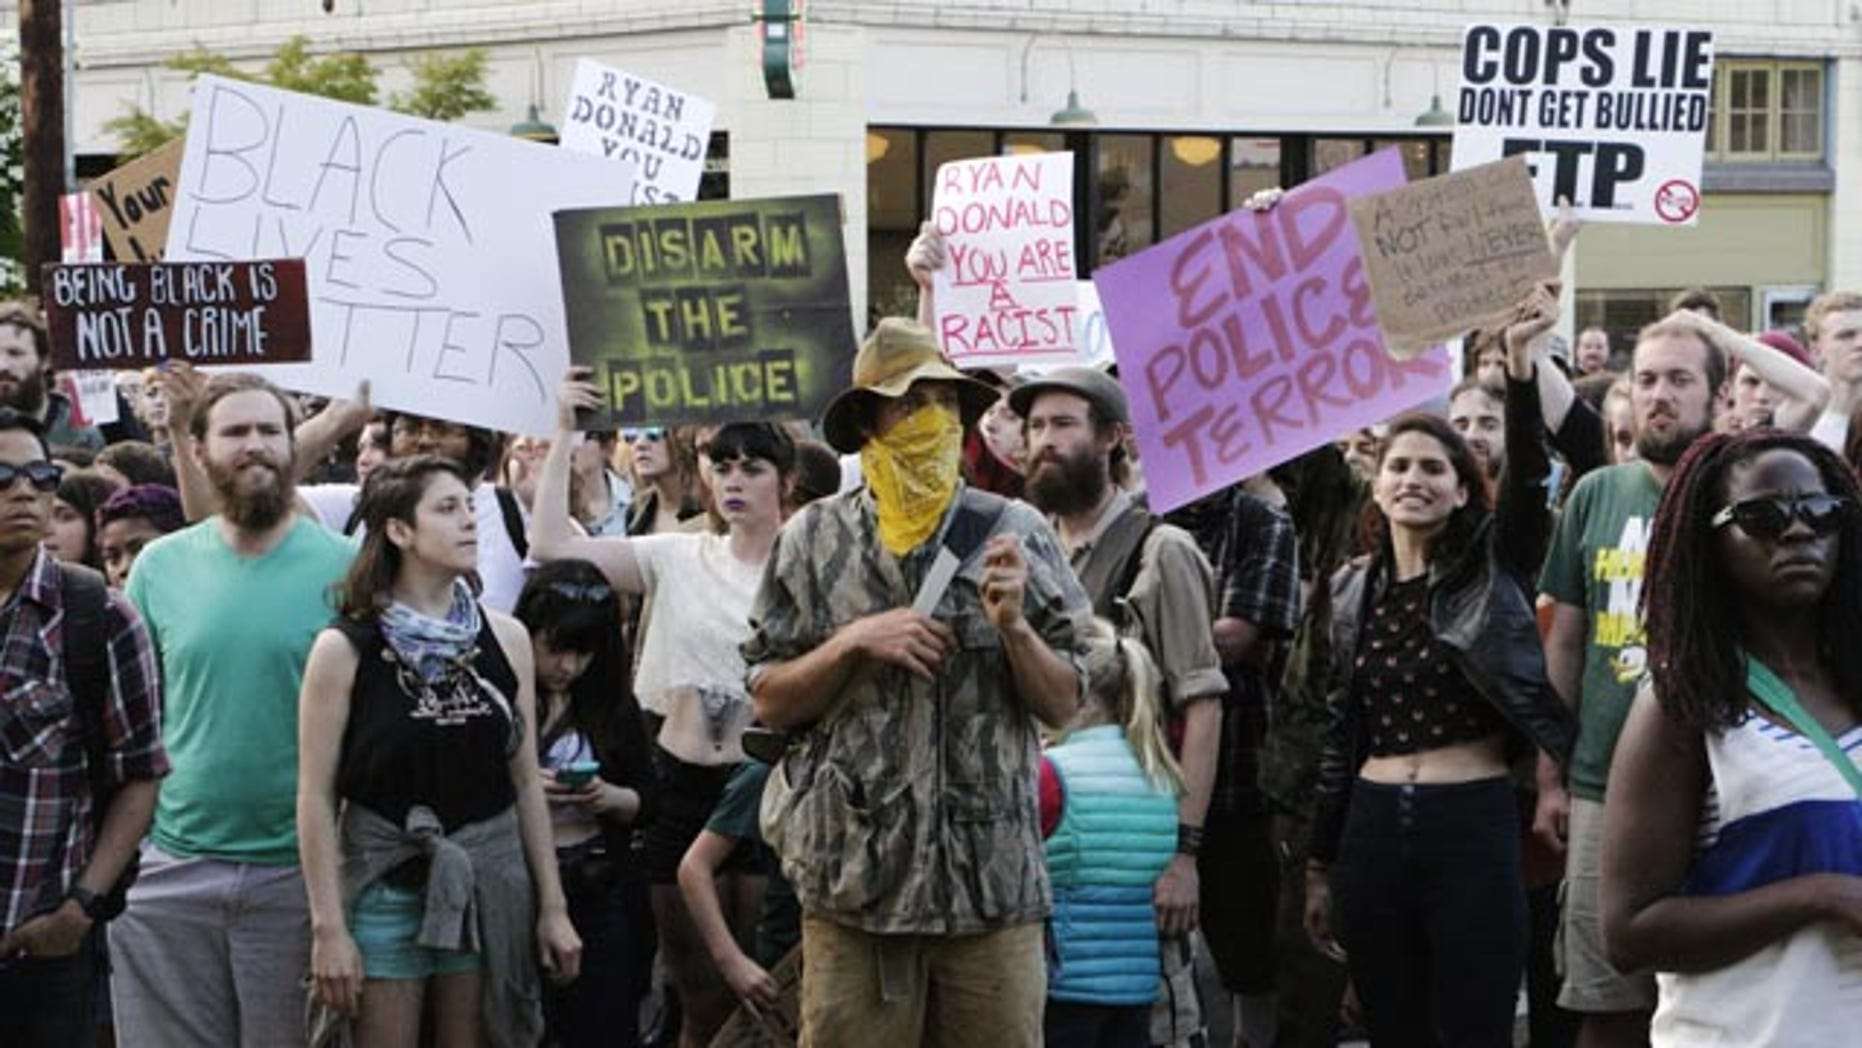 May 21, 2015: Hundreds of people protesting a police shooting gather outside of City Hall in Olympia, Wash. Police say that two stepbrothers suspected of trying to steal beer from a grocery store were unarmed when they were shot by an officer who later confronted them. (AP Photo/Rachel La Corte)